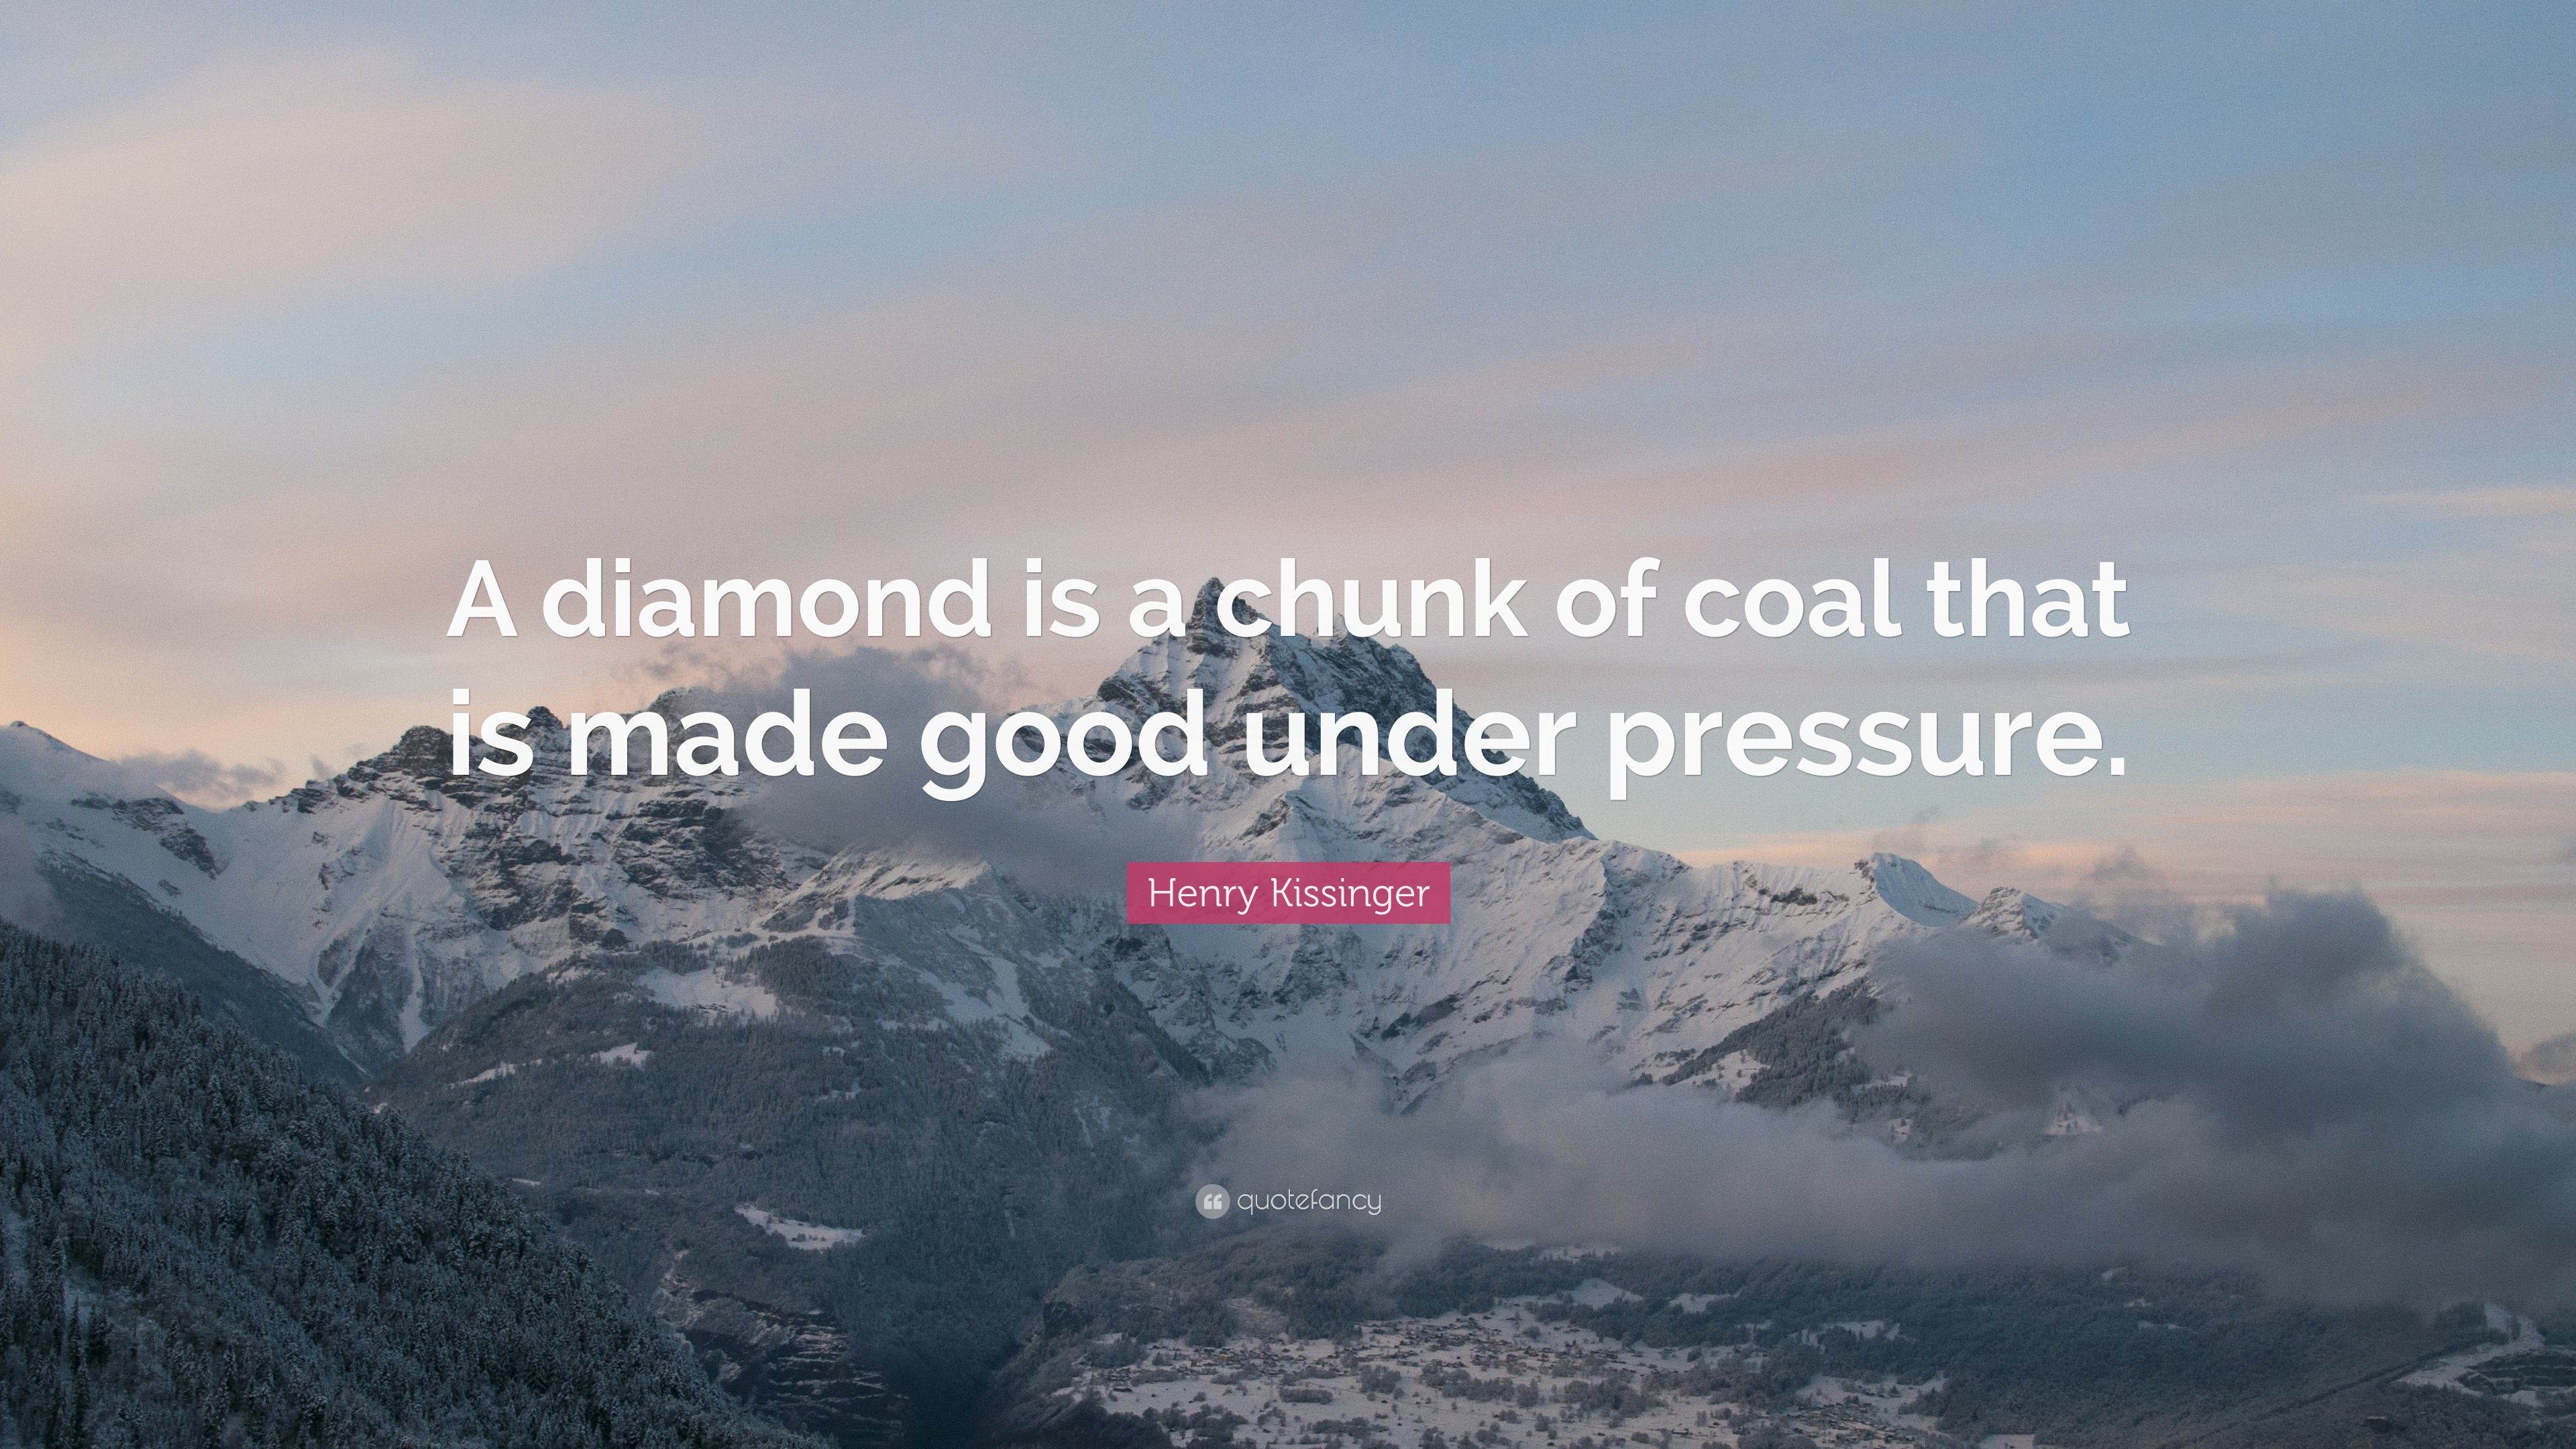 are formed howarediamondsformedfromcoal how diamond diamonds coal from